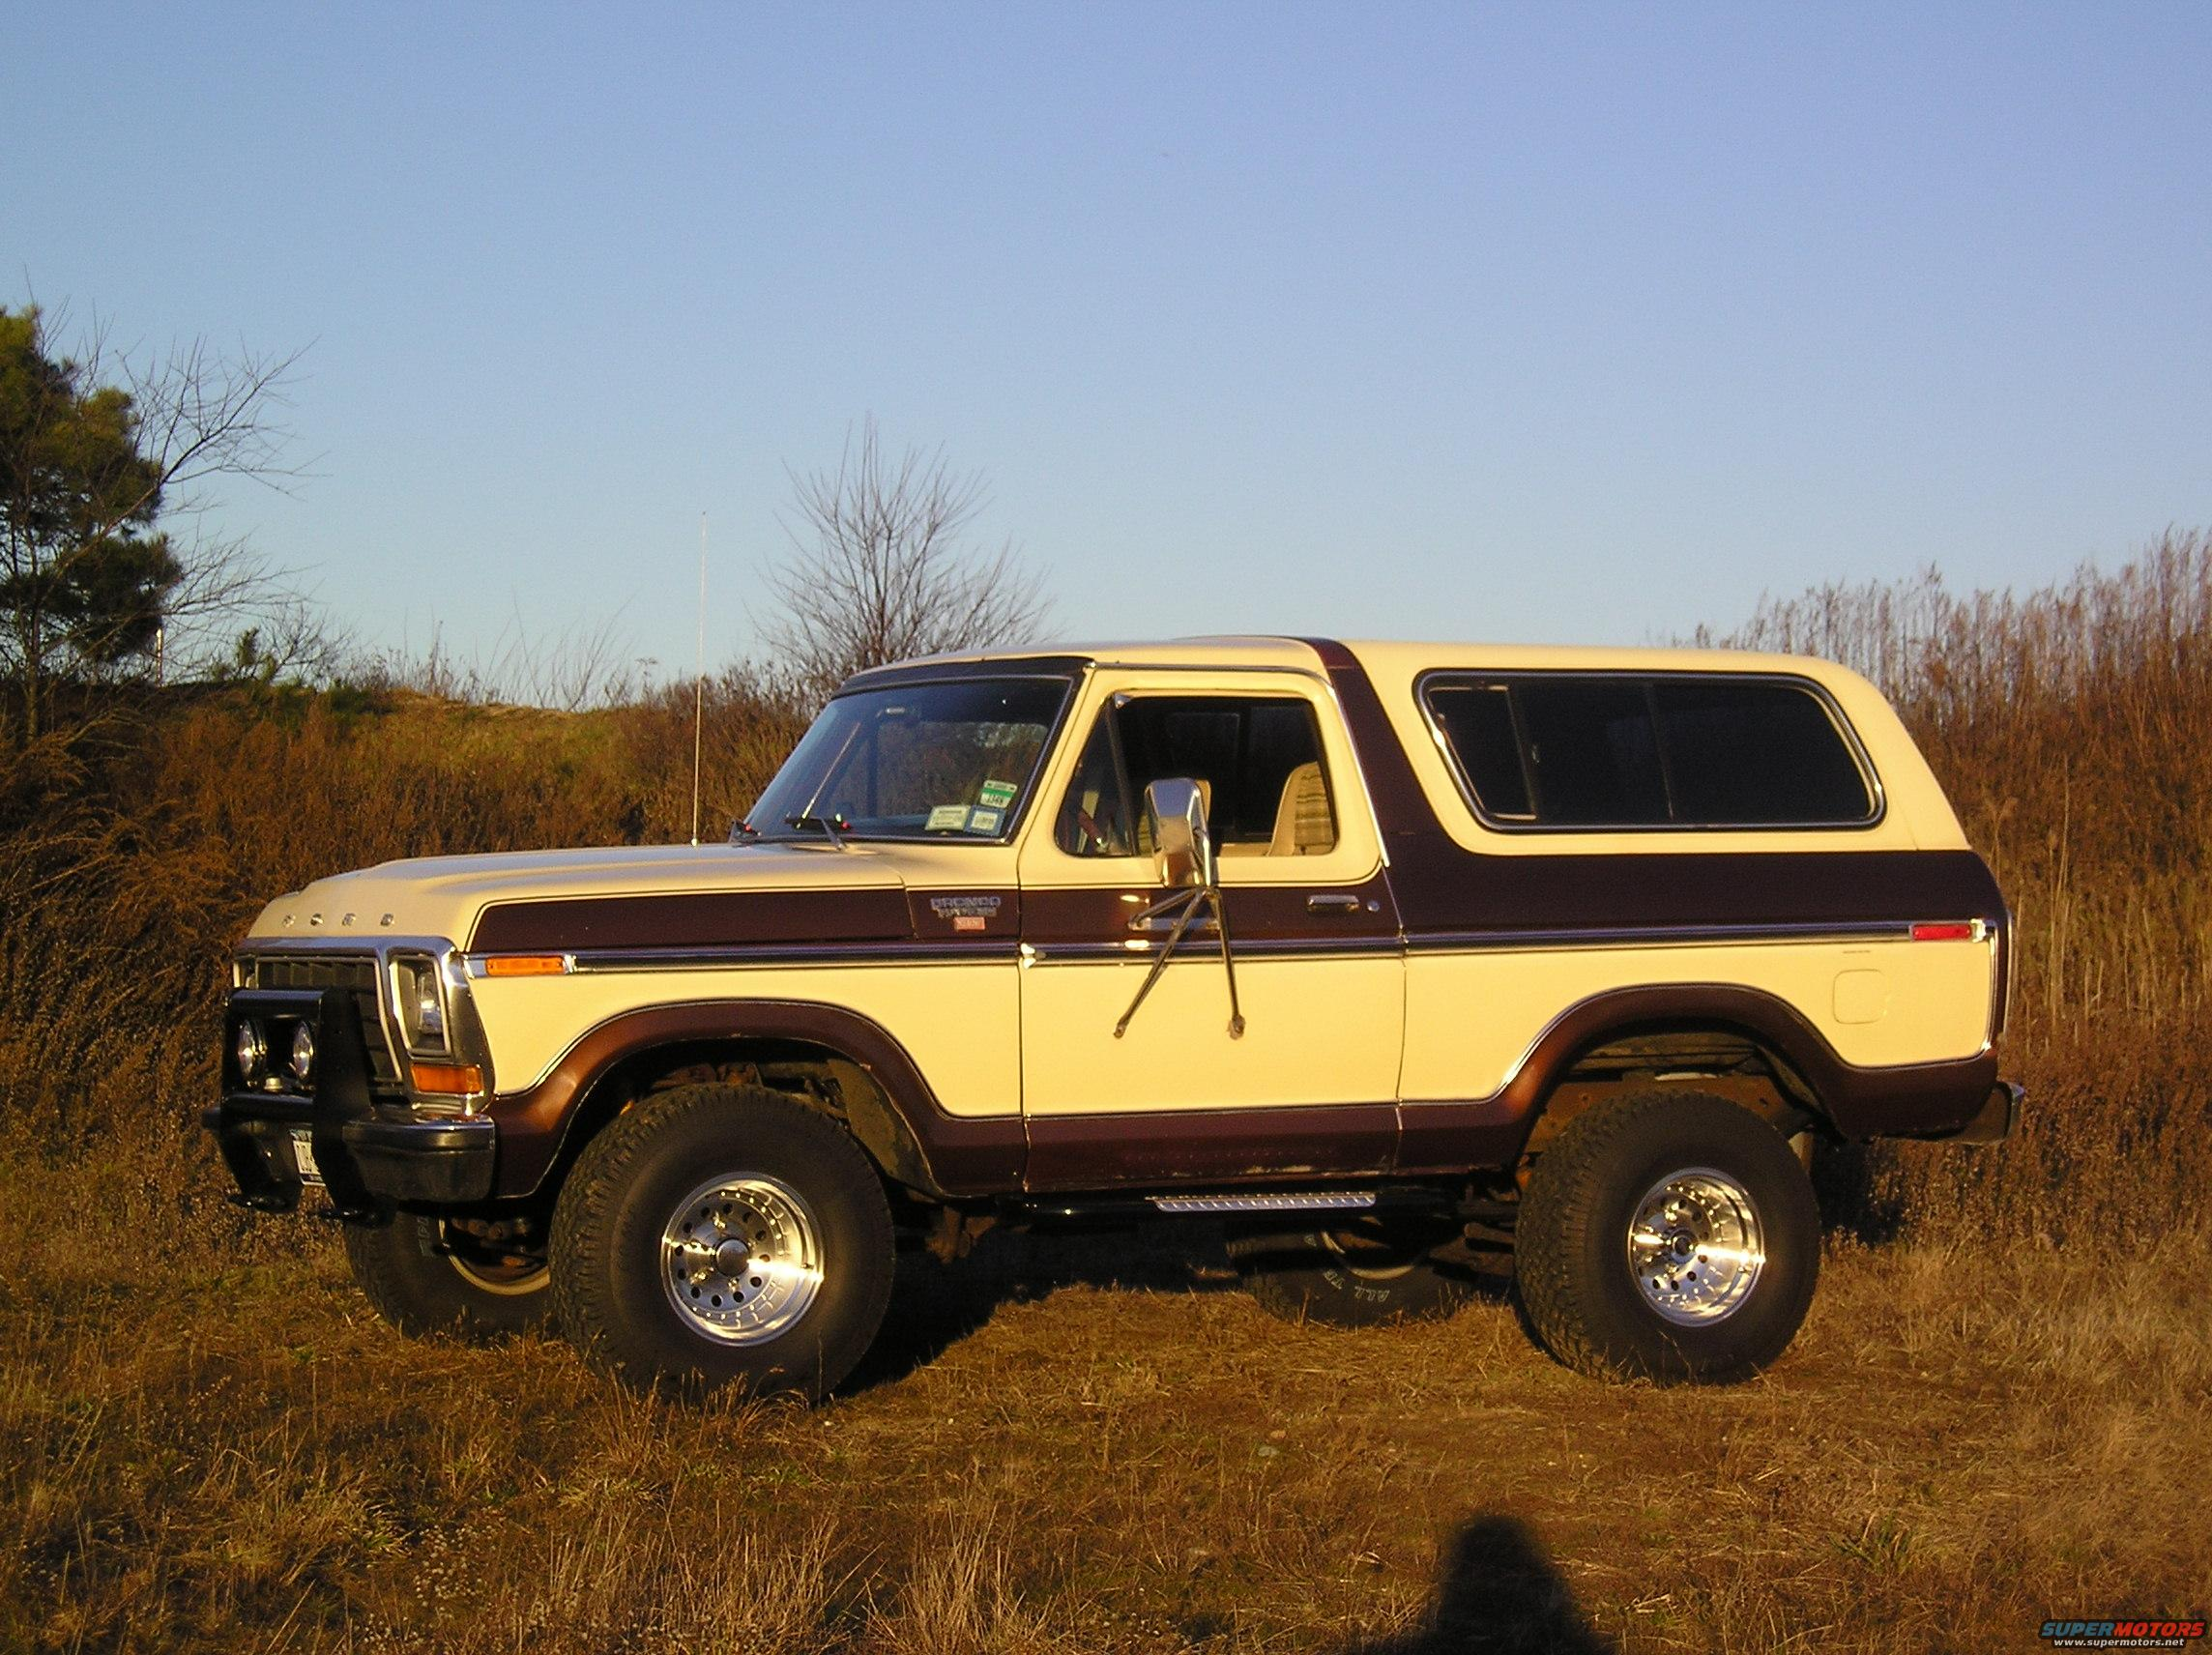 Ford Ranger Images >> 1979 Ford Bronco 79 Bronco Ranger XLT Trailer Special picture | SuperMotors.net